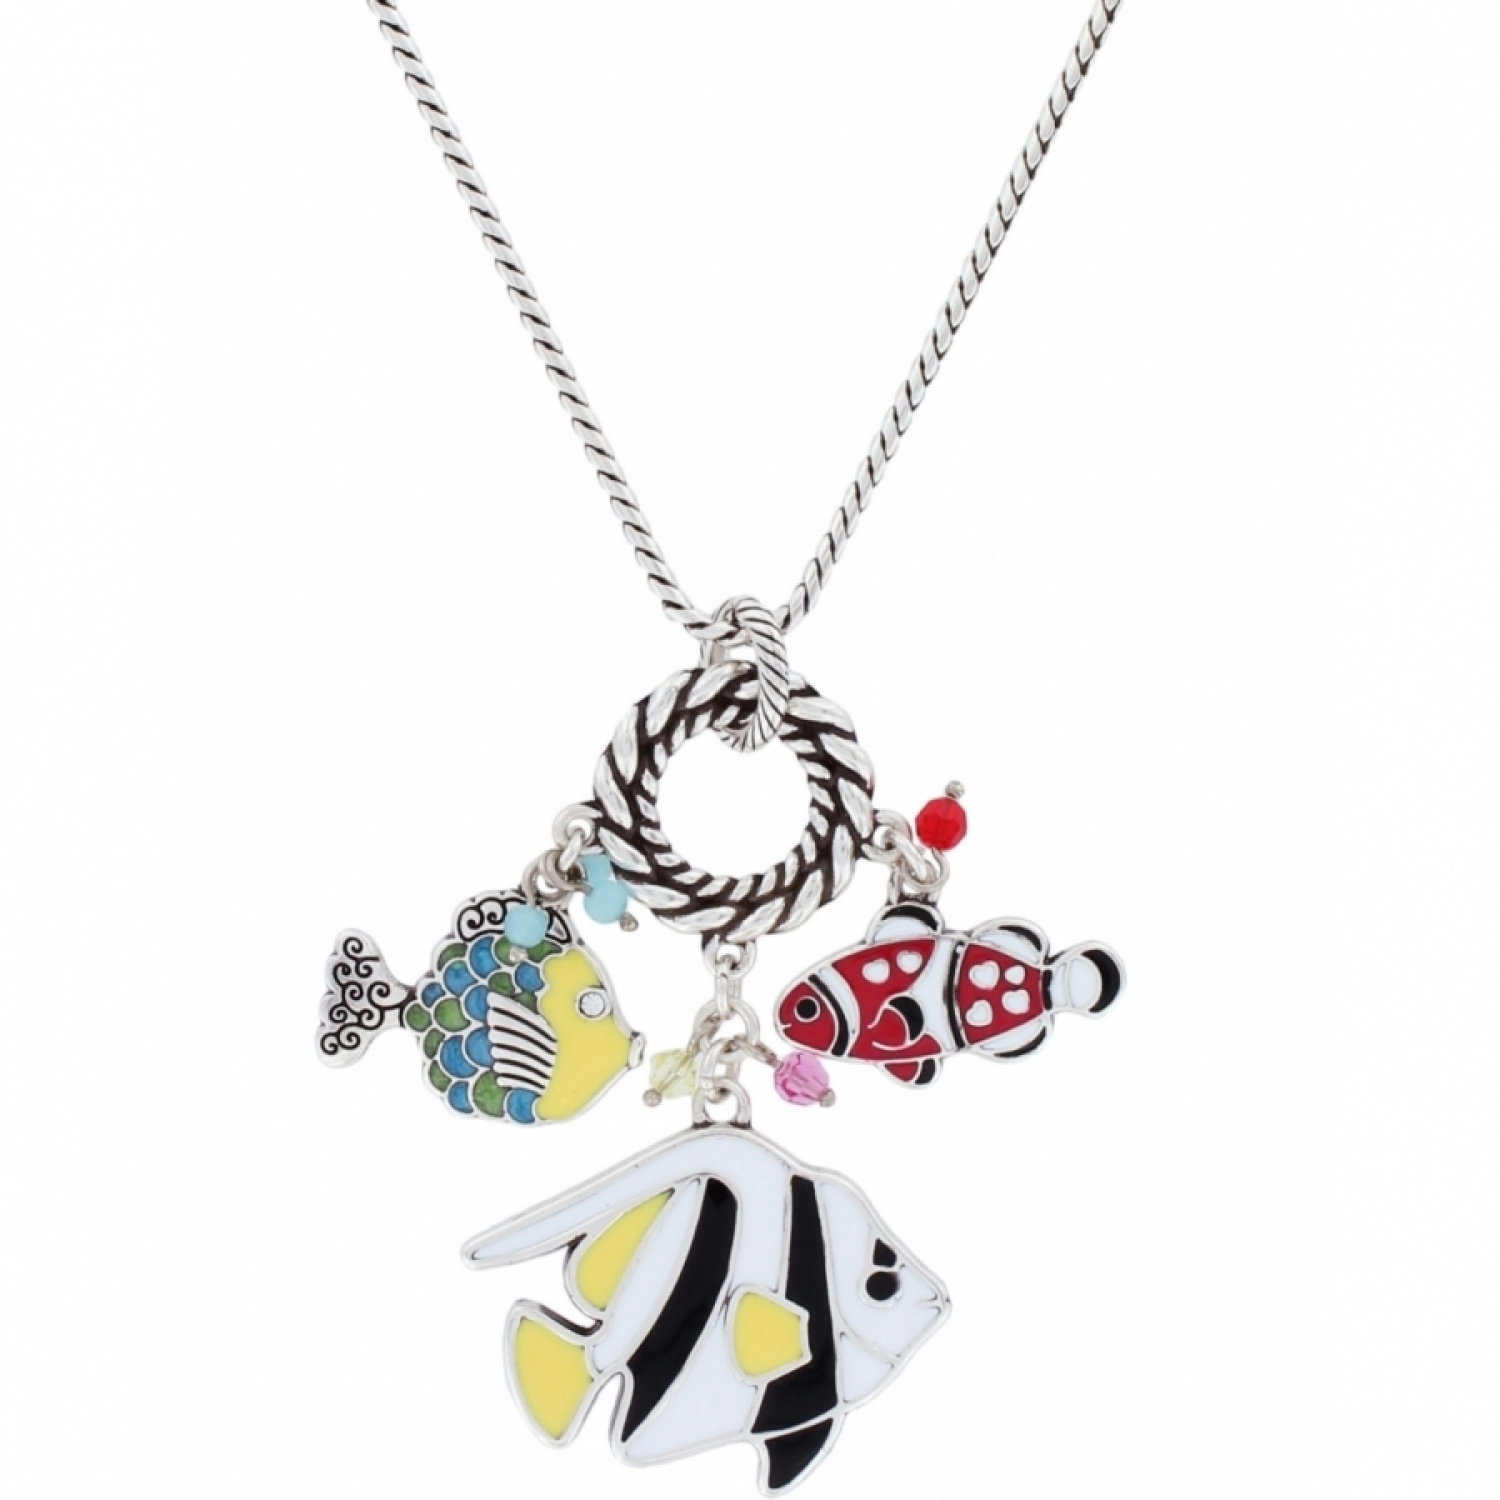 Sea Frolic Necklace Alternate View 1